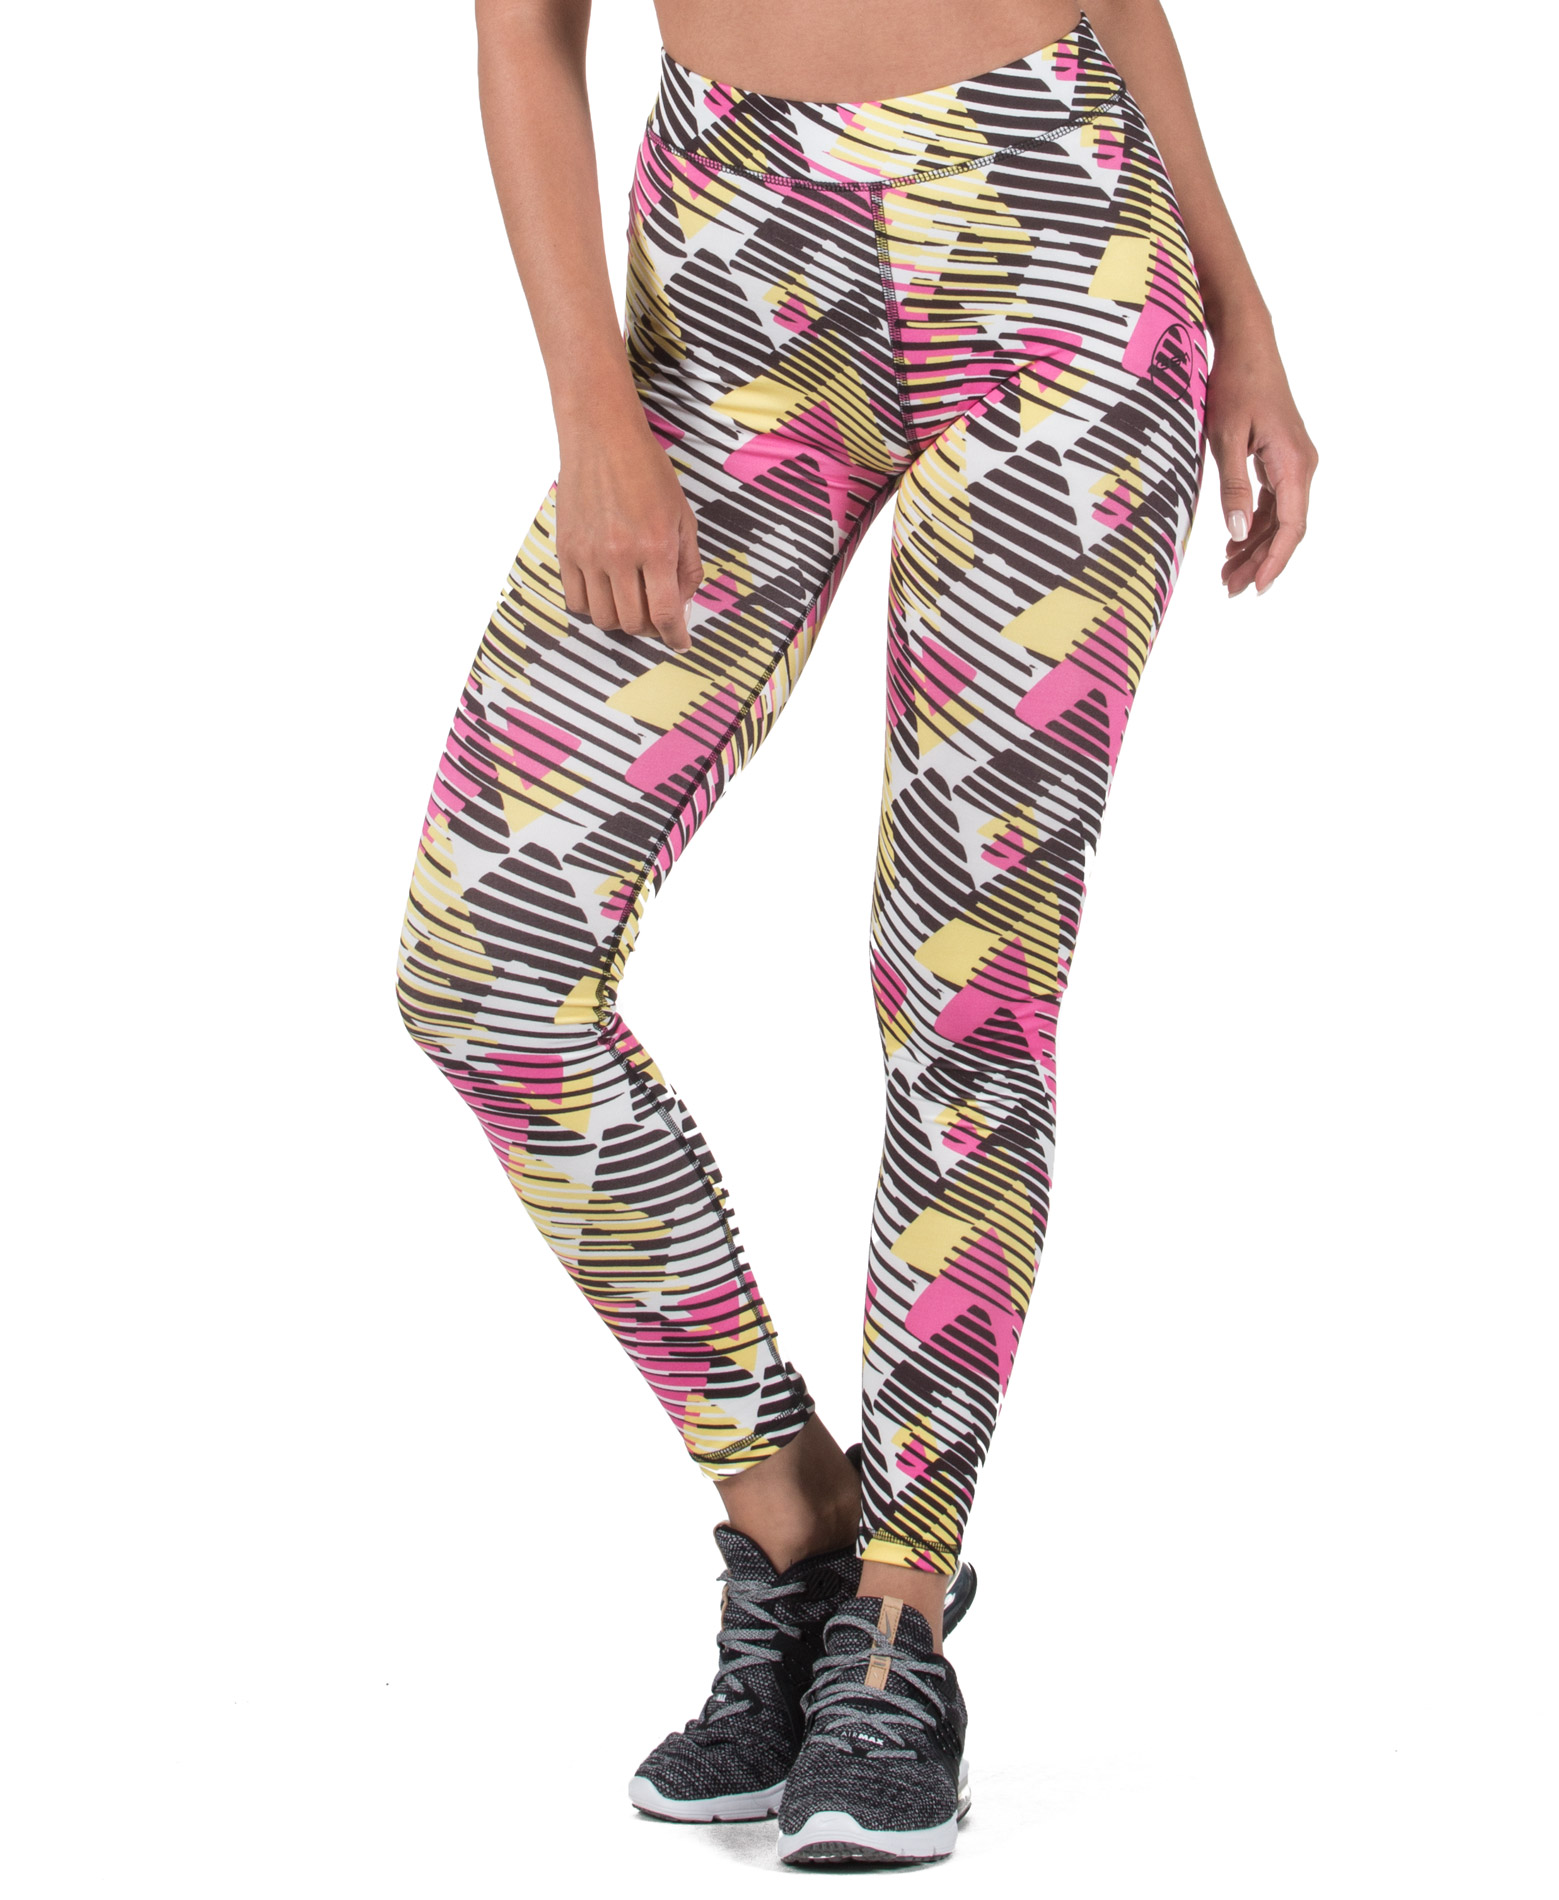 GSA HYDRO+ UP_FIT LEGGINGS 17-28077-TYPE 04 ΠΟΛΥΧΡΩΜΟ